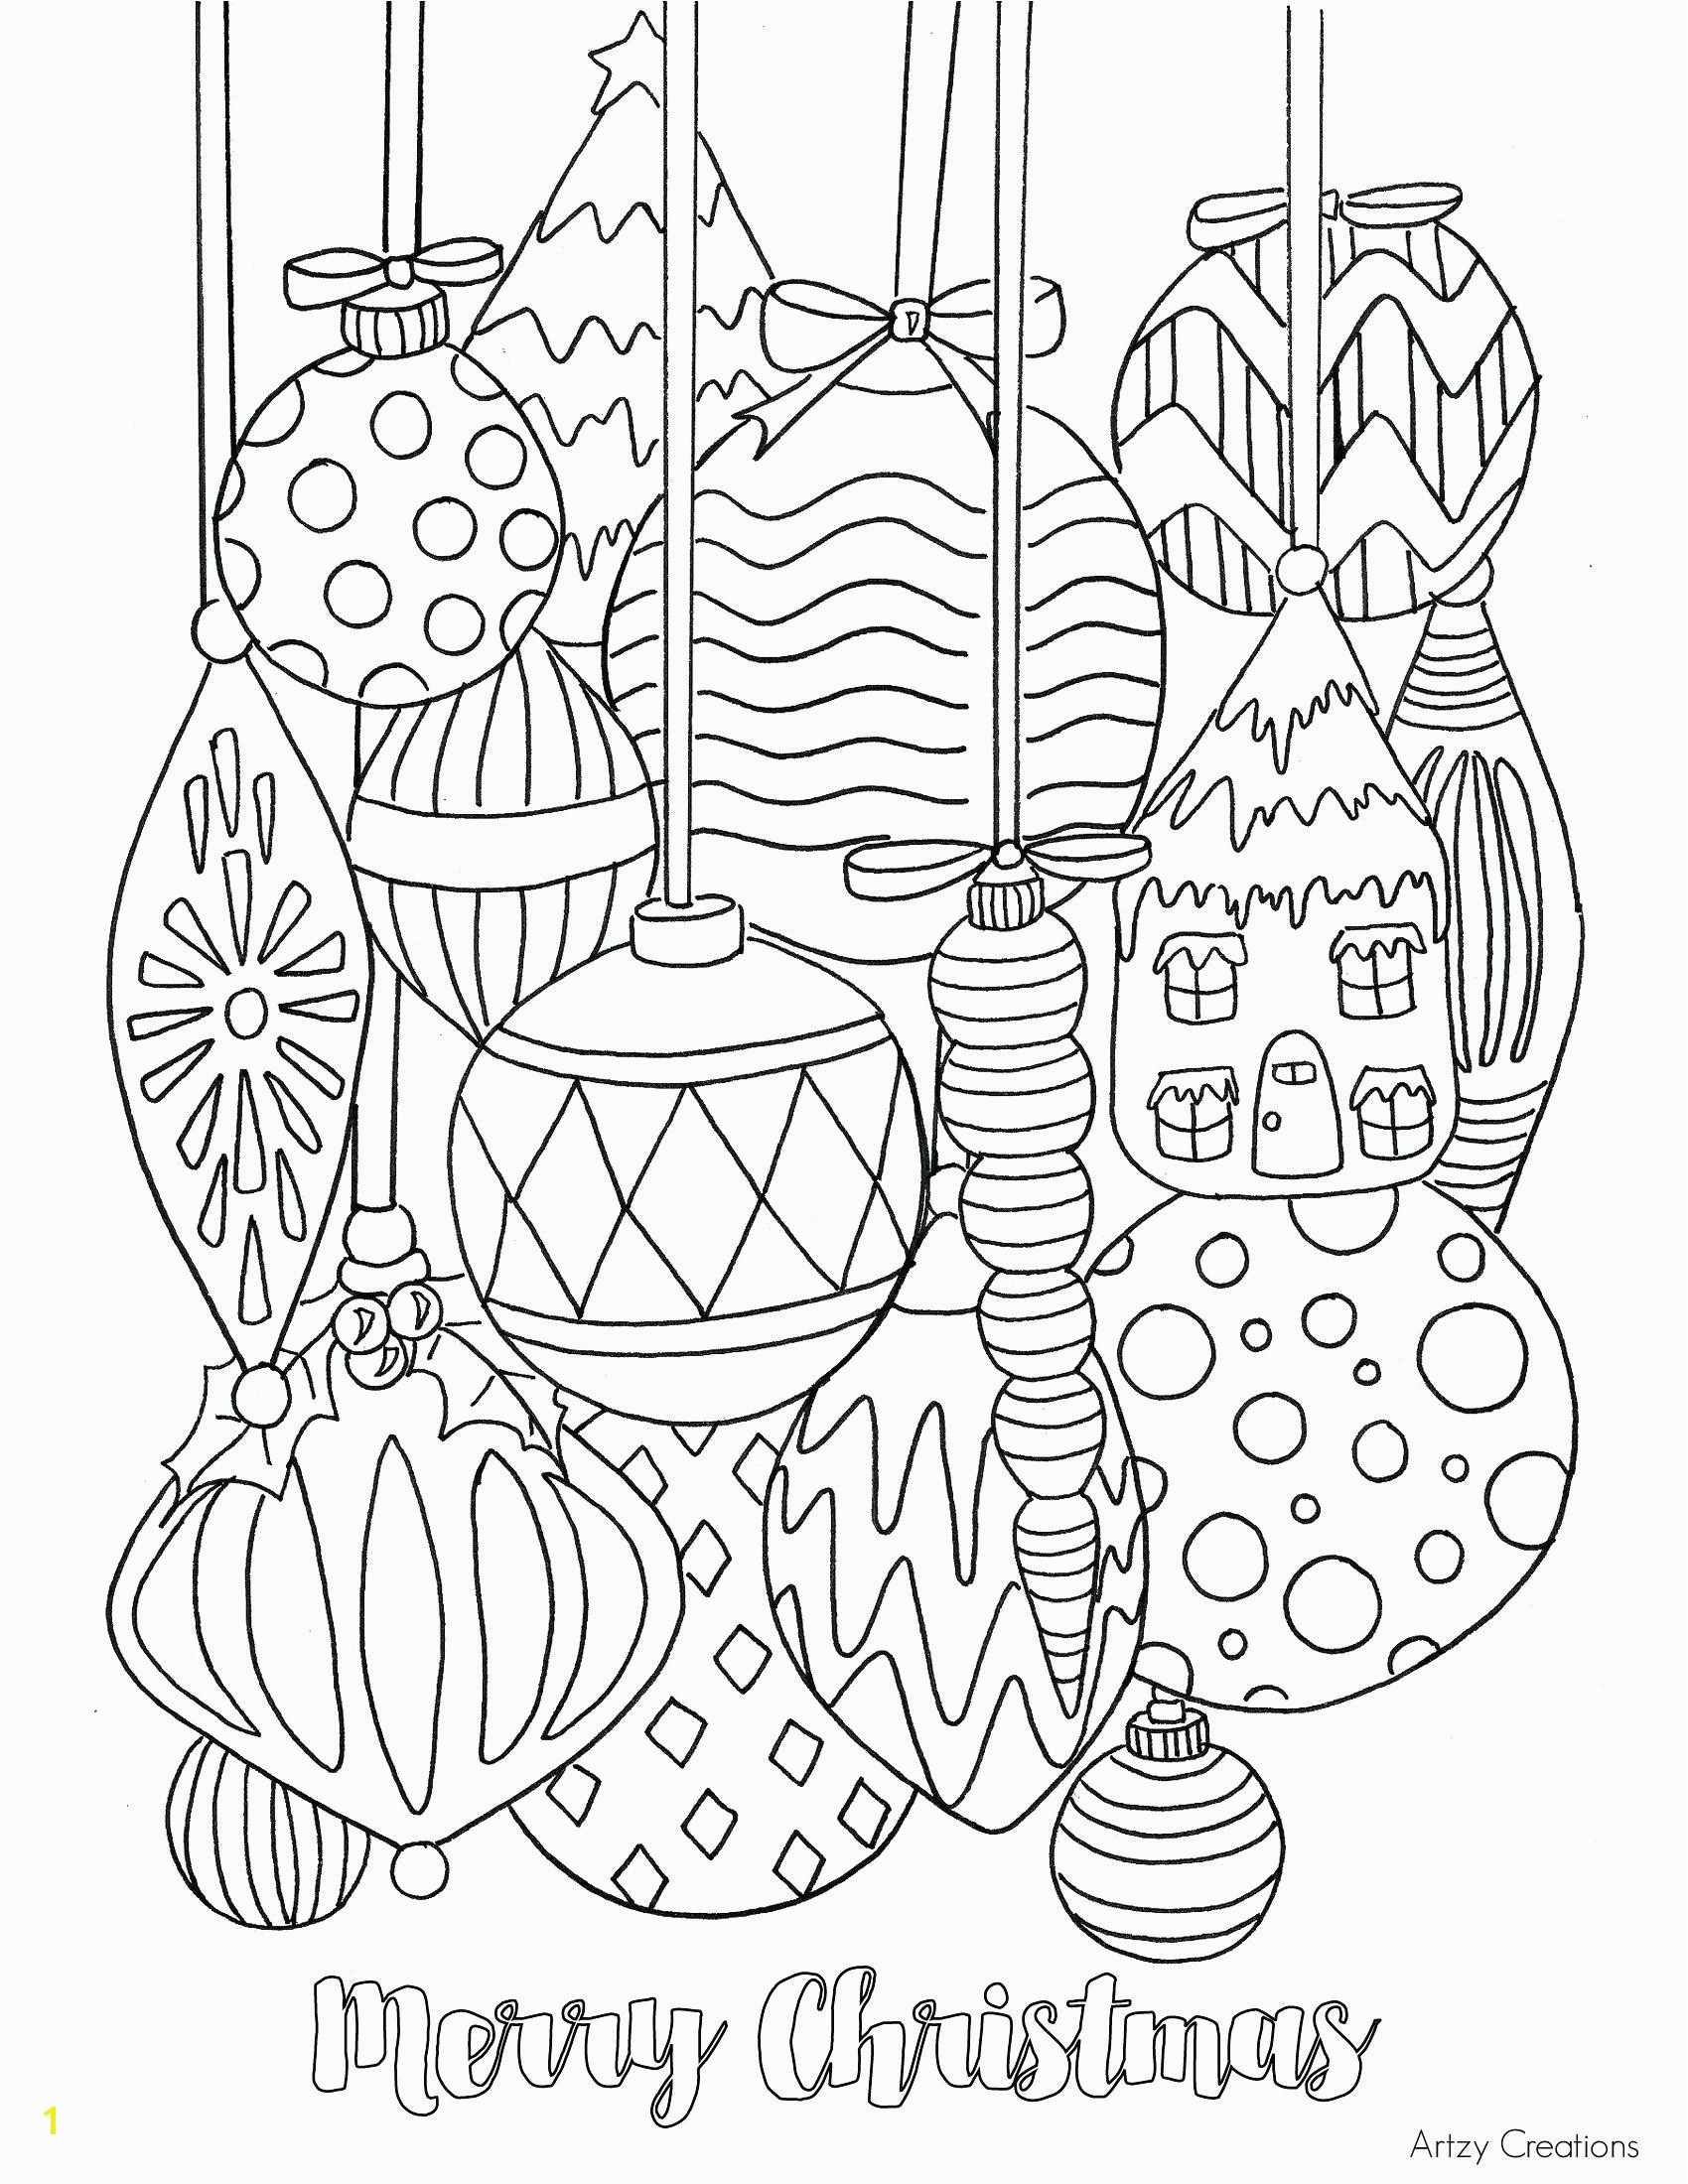 Turn A Into A Coloring Page shop Fresh Whale Coloring Page Best Turn Into Coloring